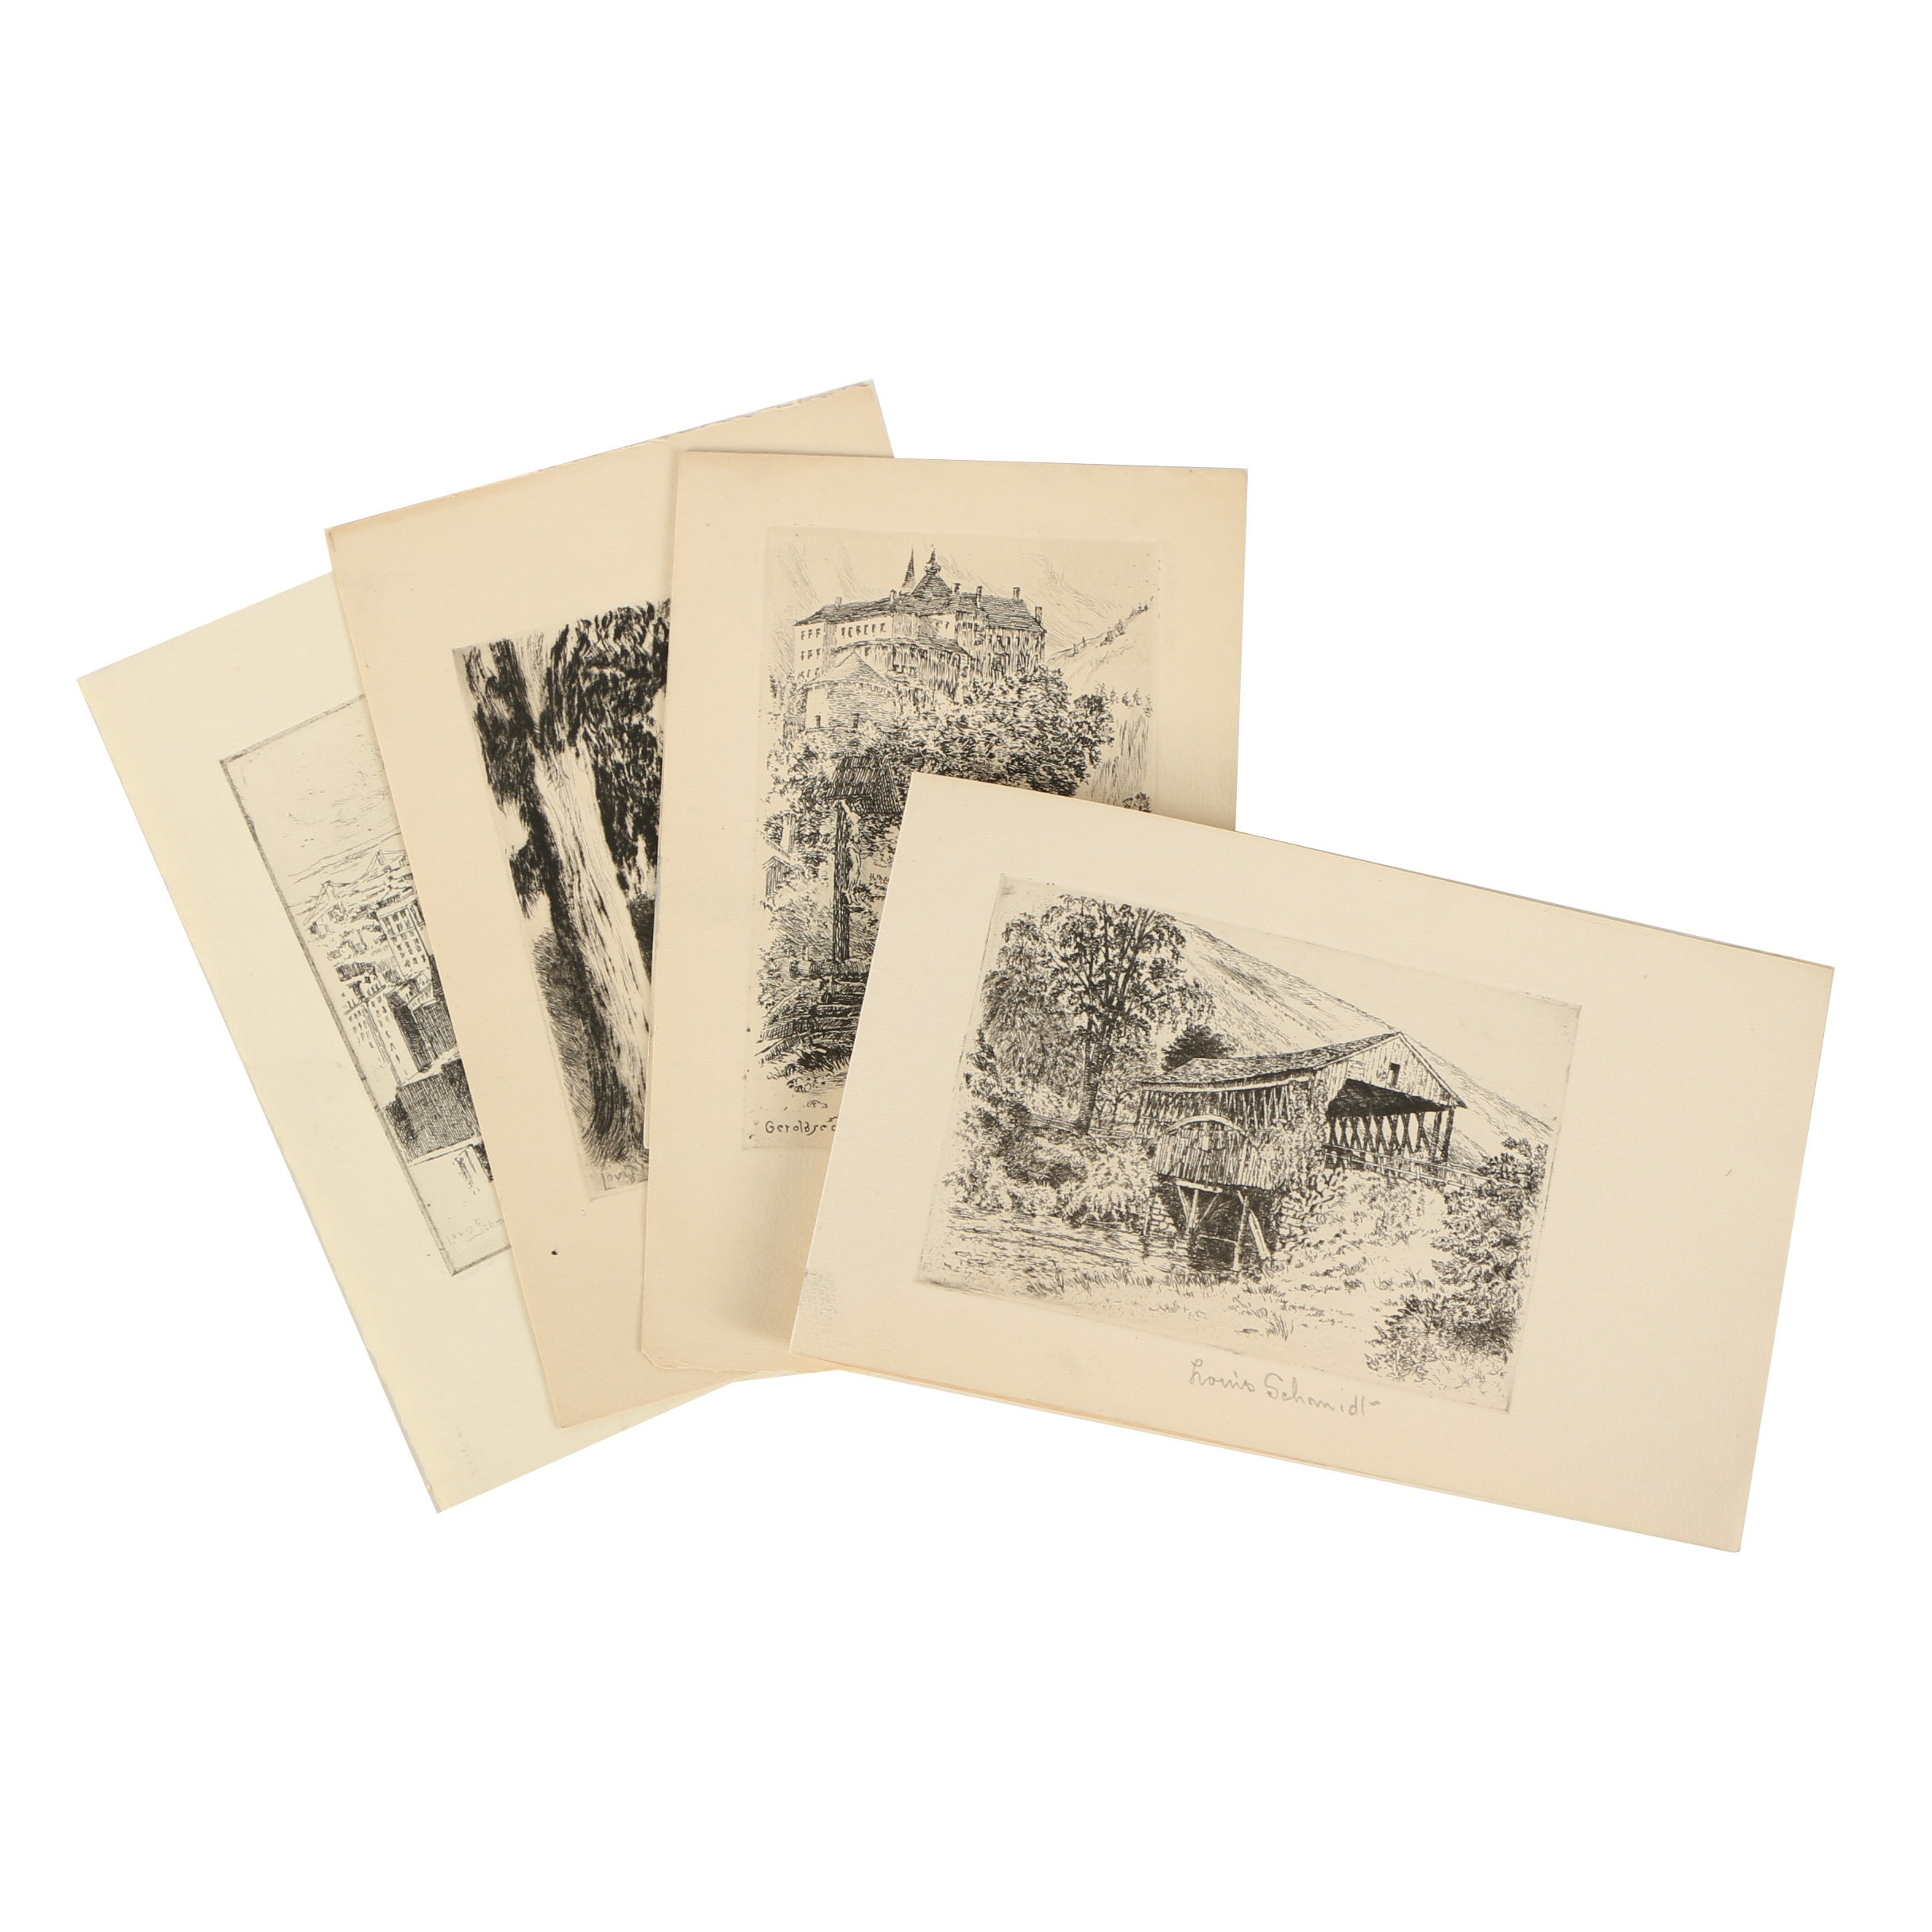 Louis Schmidt Etchings with Drypoint